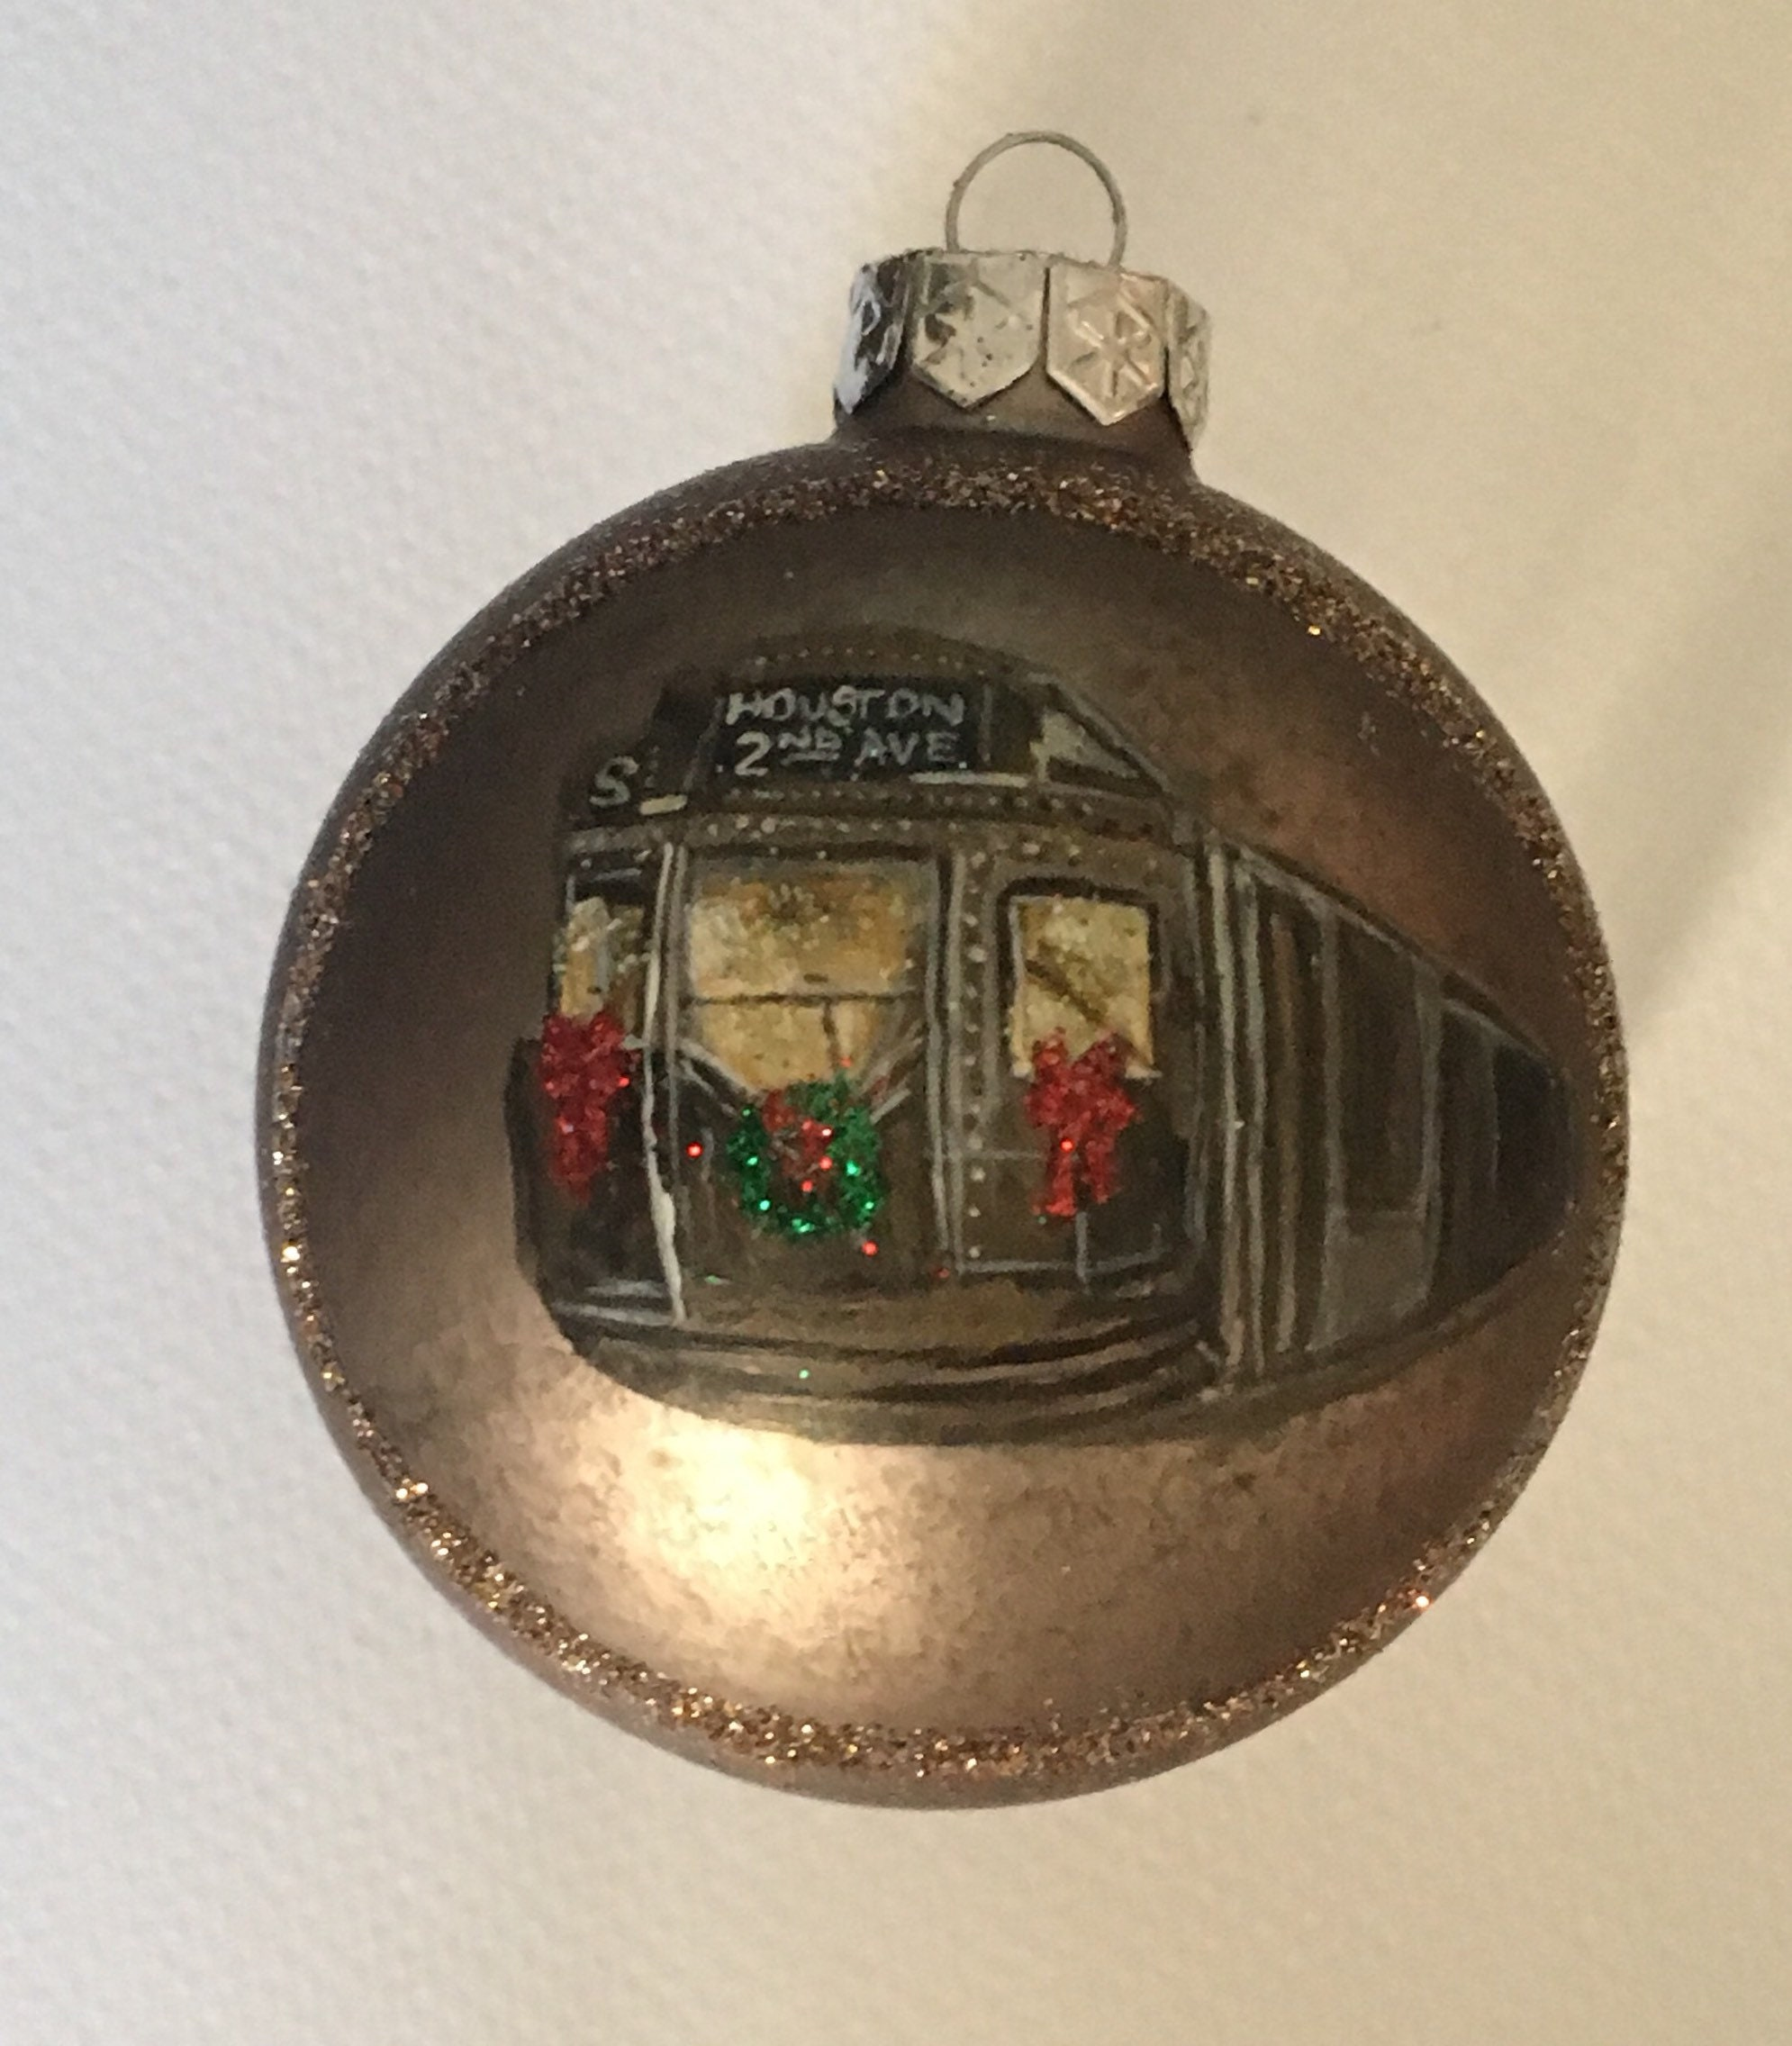 NYC Subway Hand Painted Glass Ball Christmas Ornament | Etsy